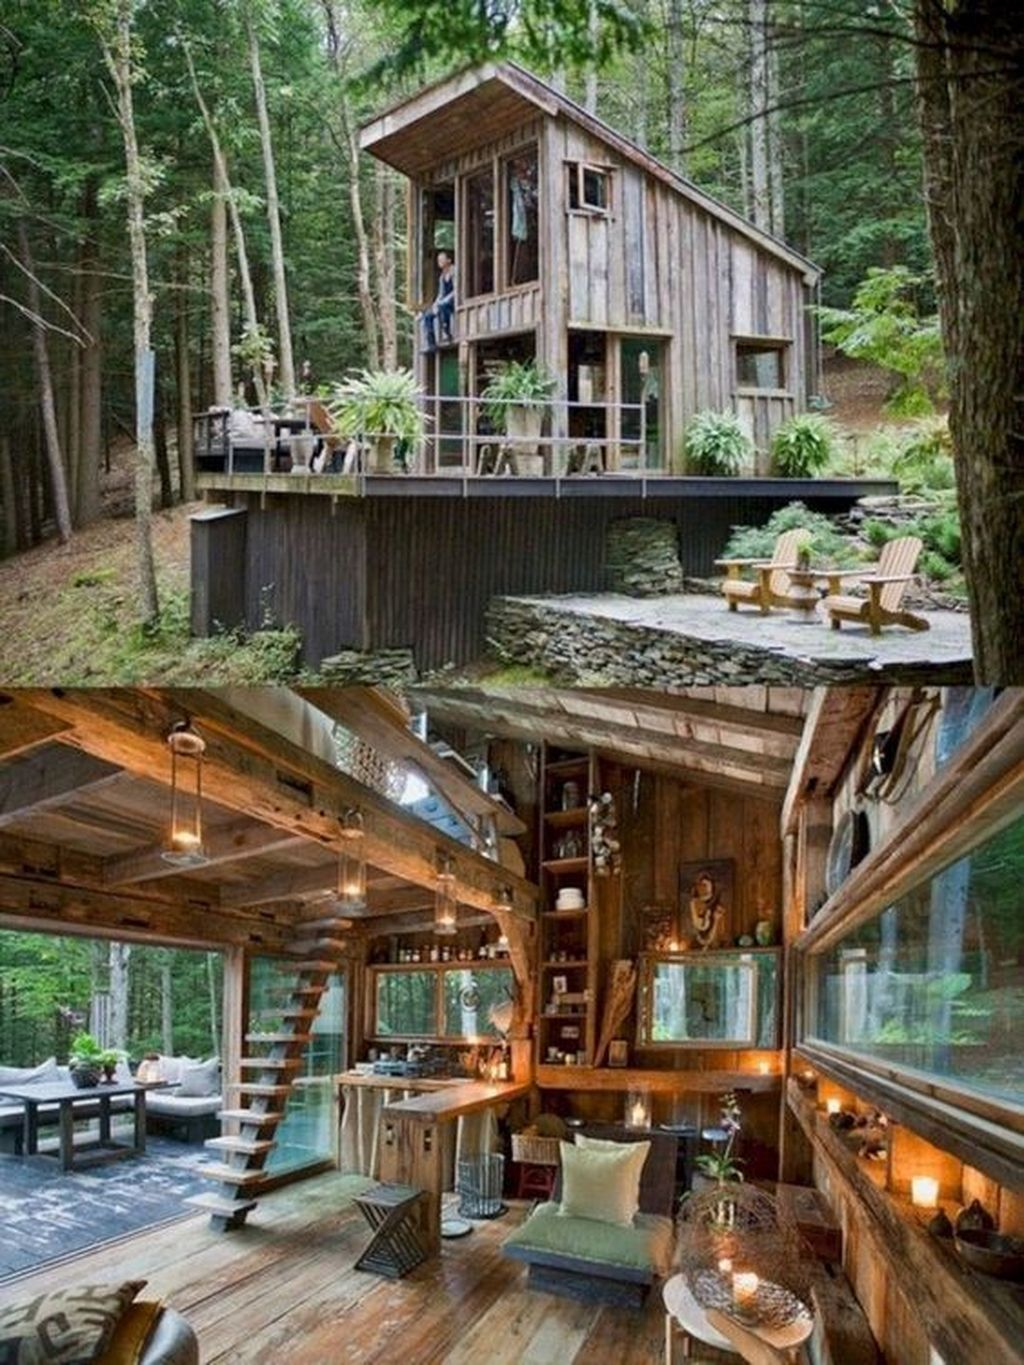 Newest Diy Tiny House Remodel Ideas To Copy Right Now 28